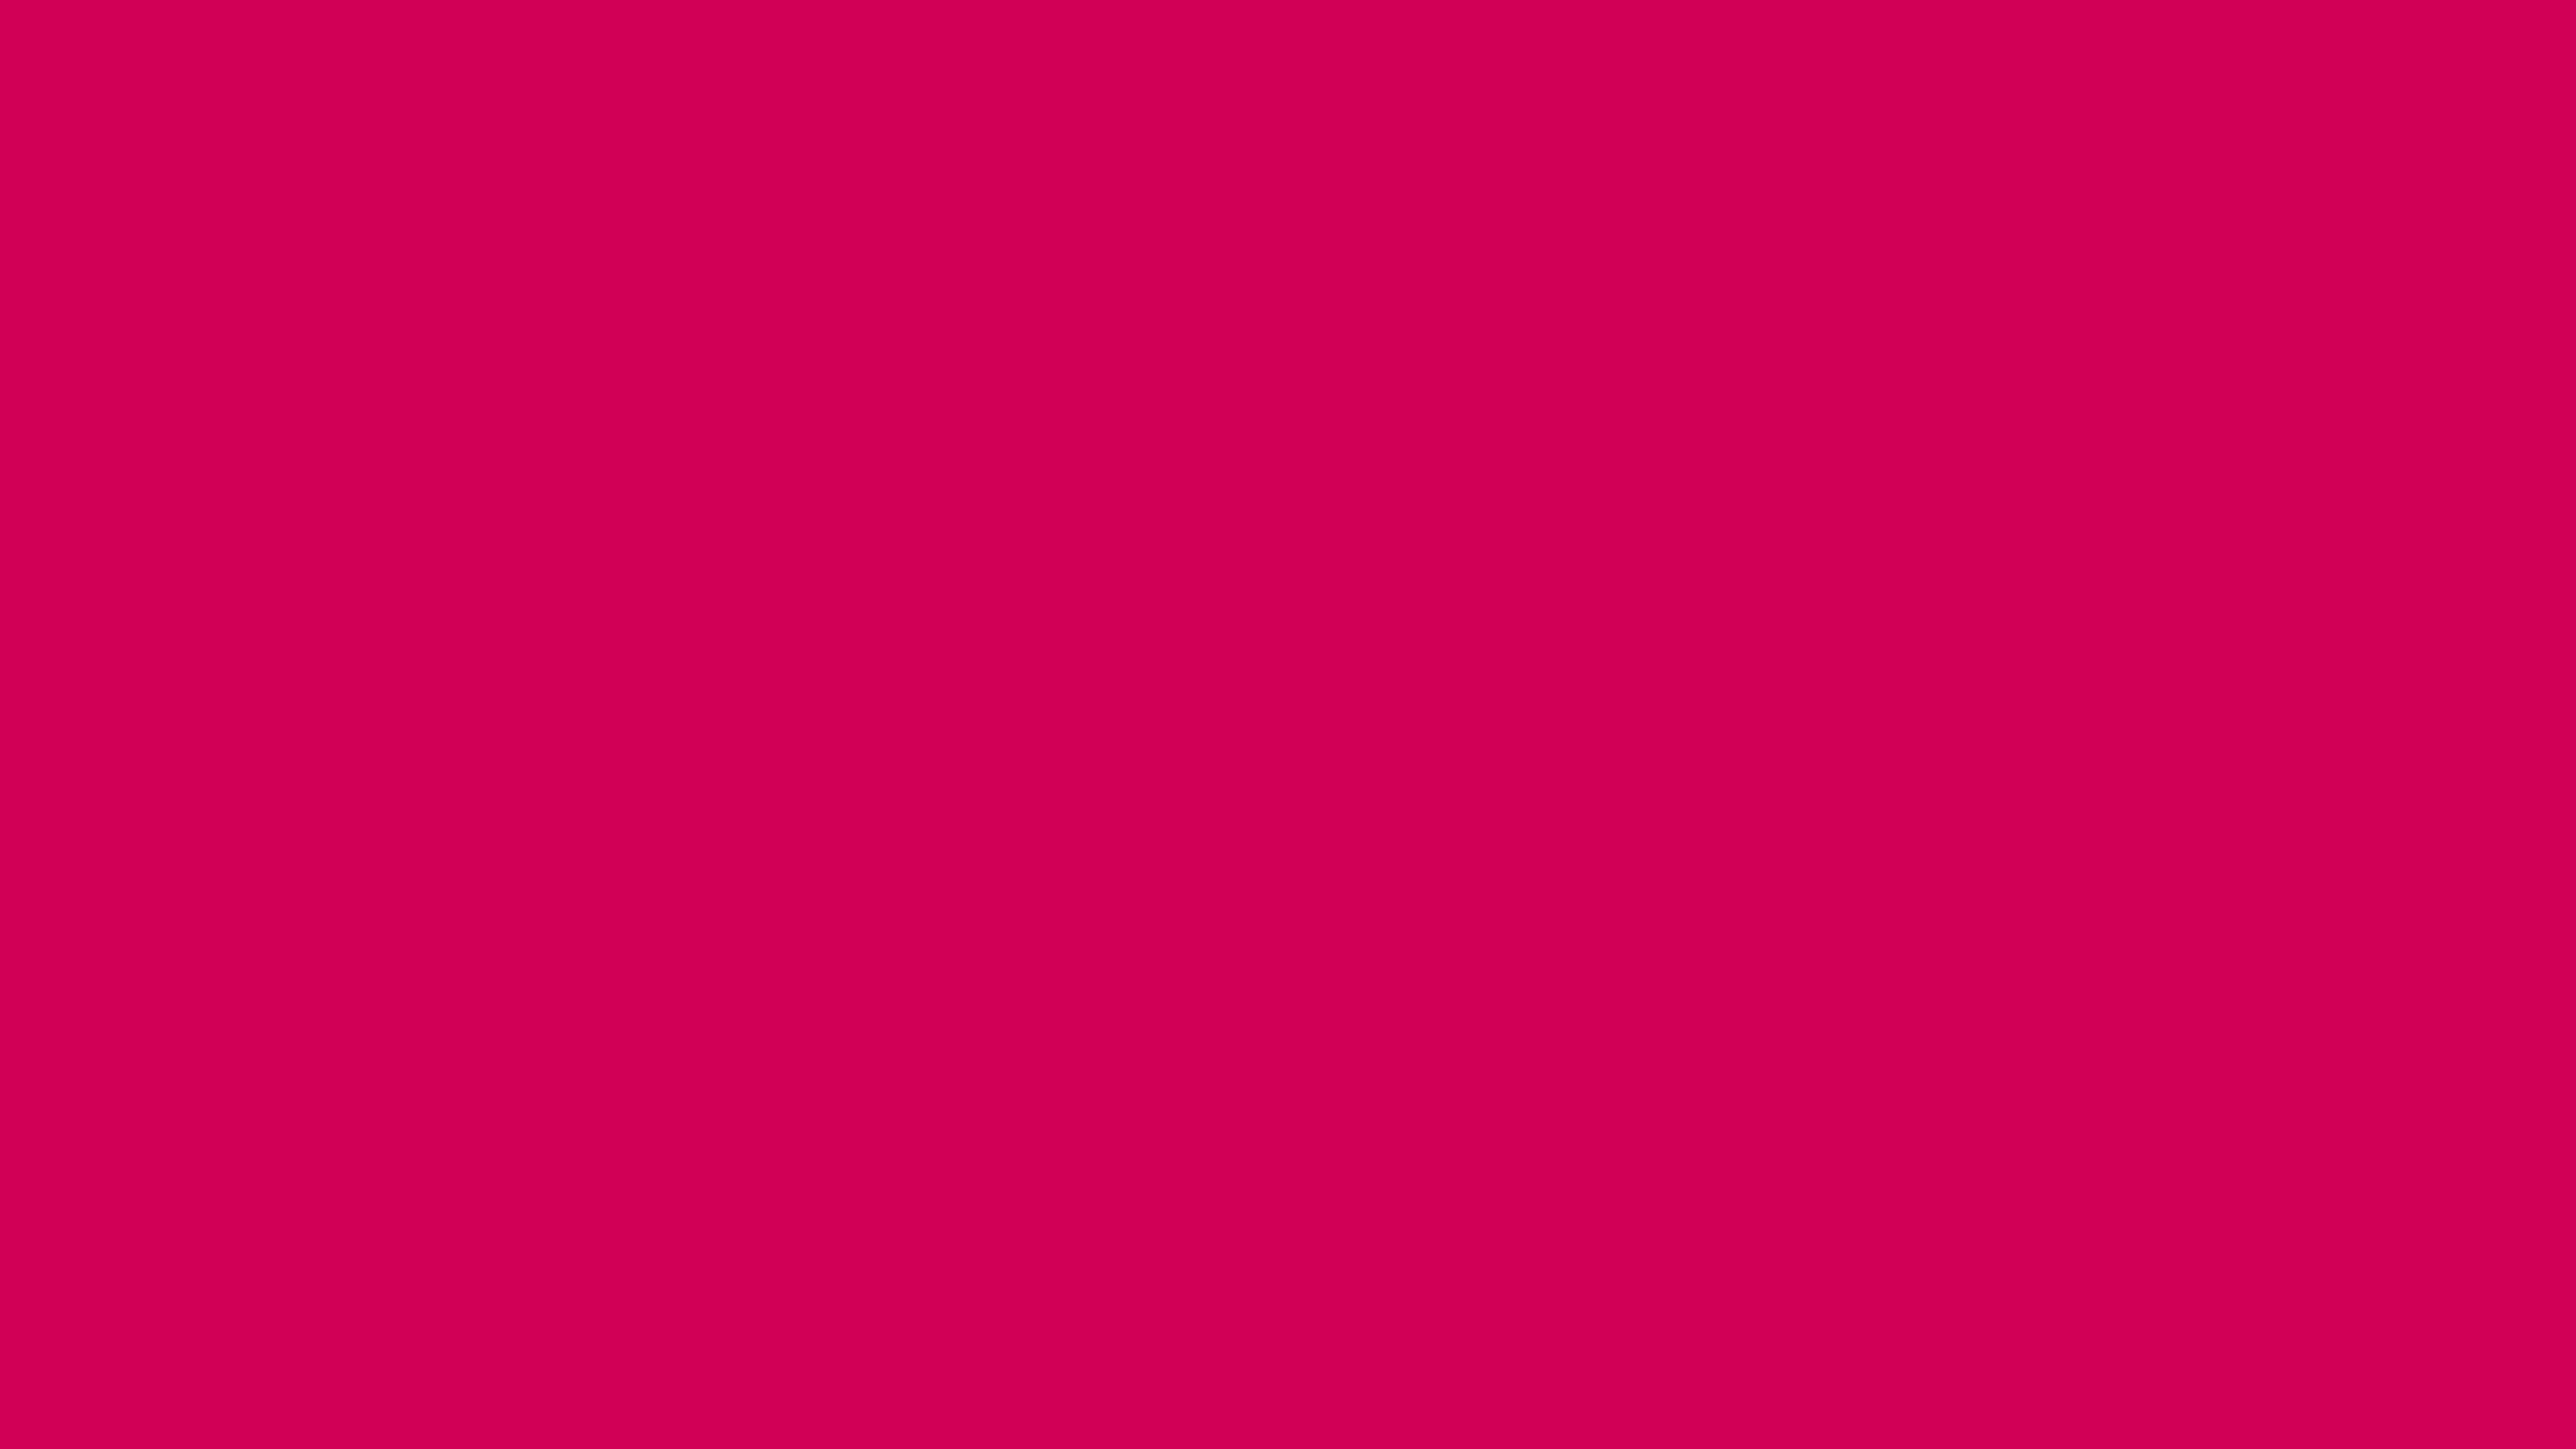 4096x2304 Rubine Red Solid Color Background